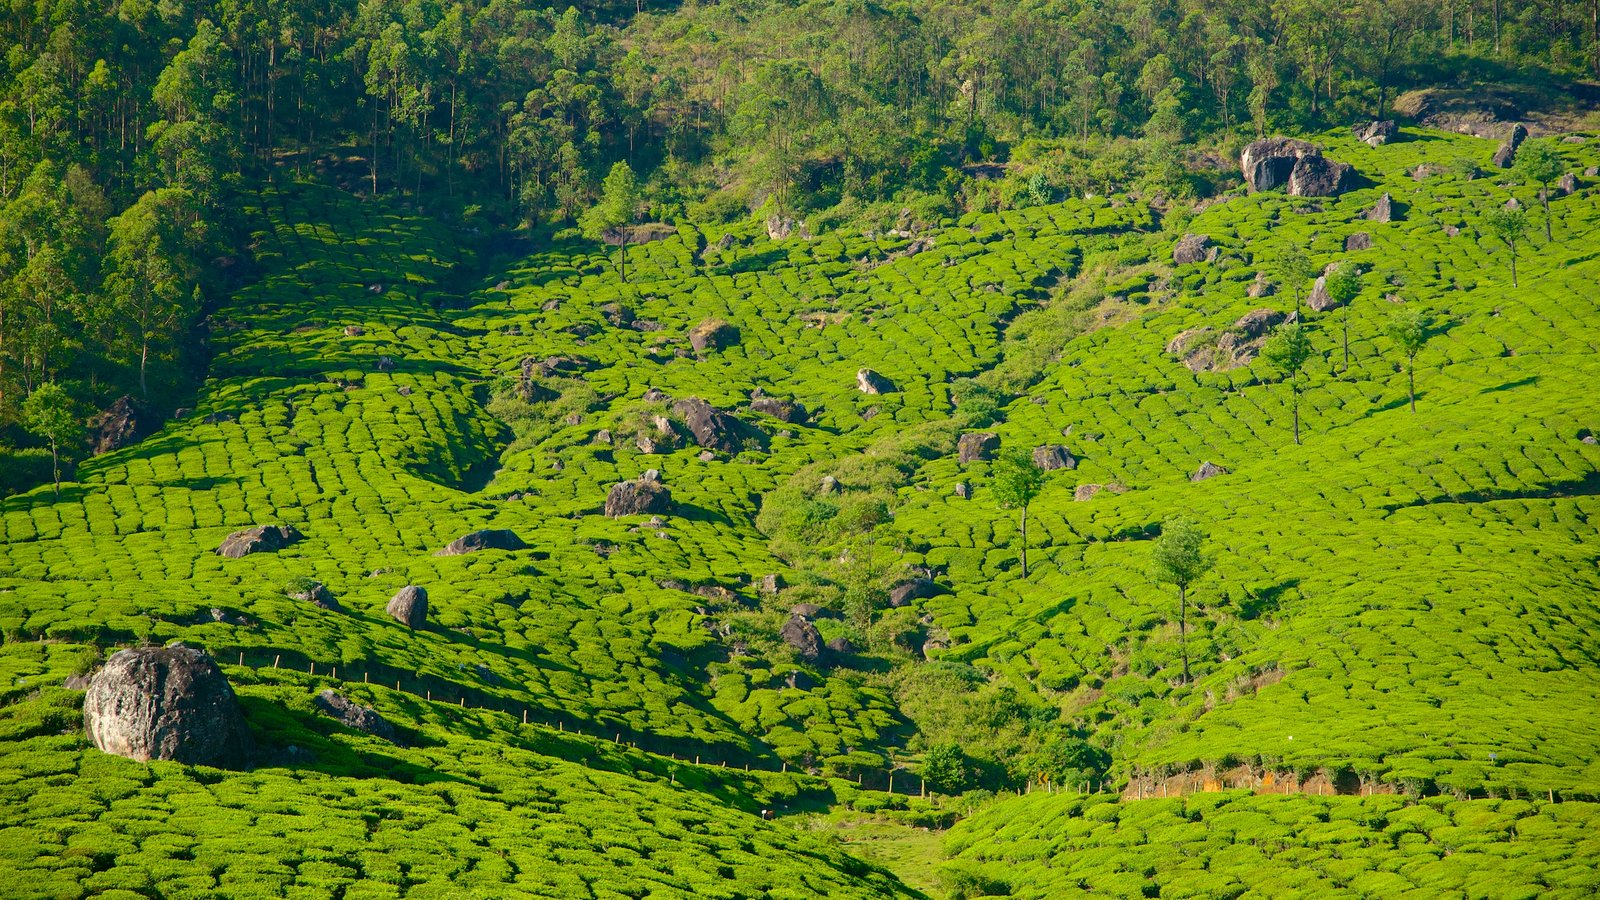 Idukki District featuring tranquil scenes